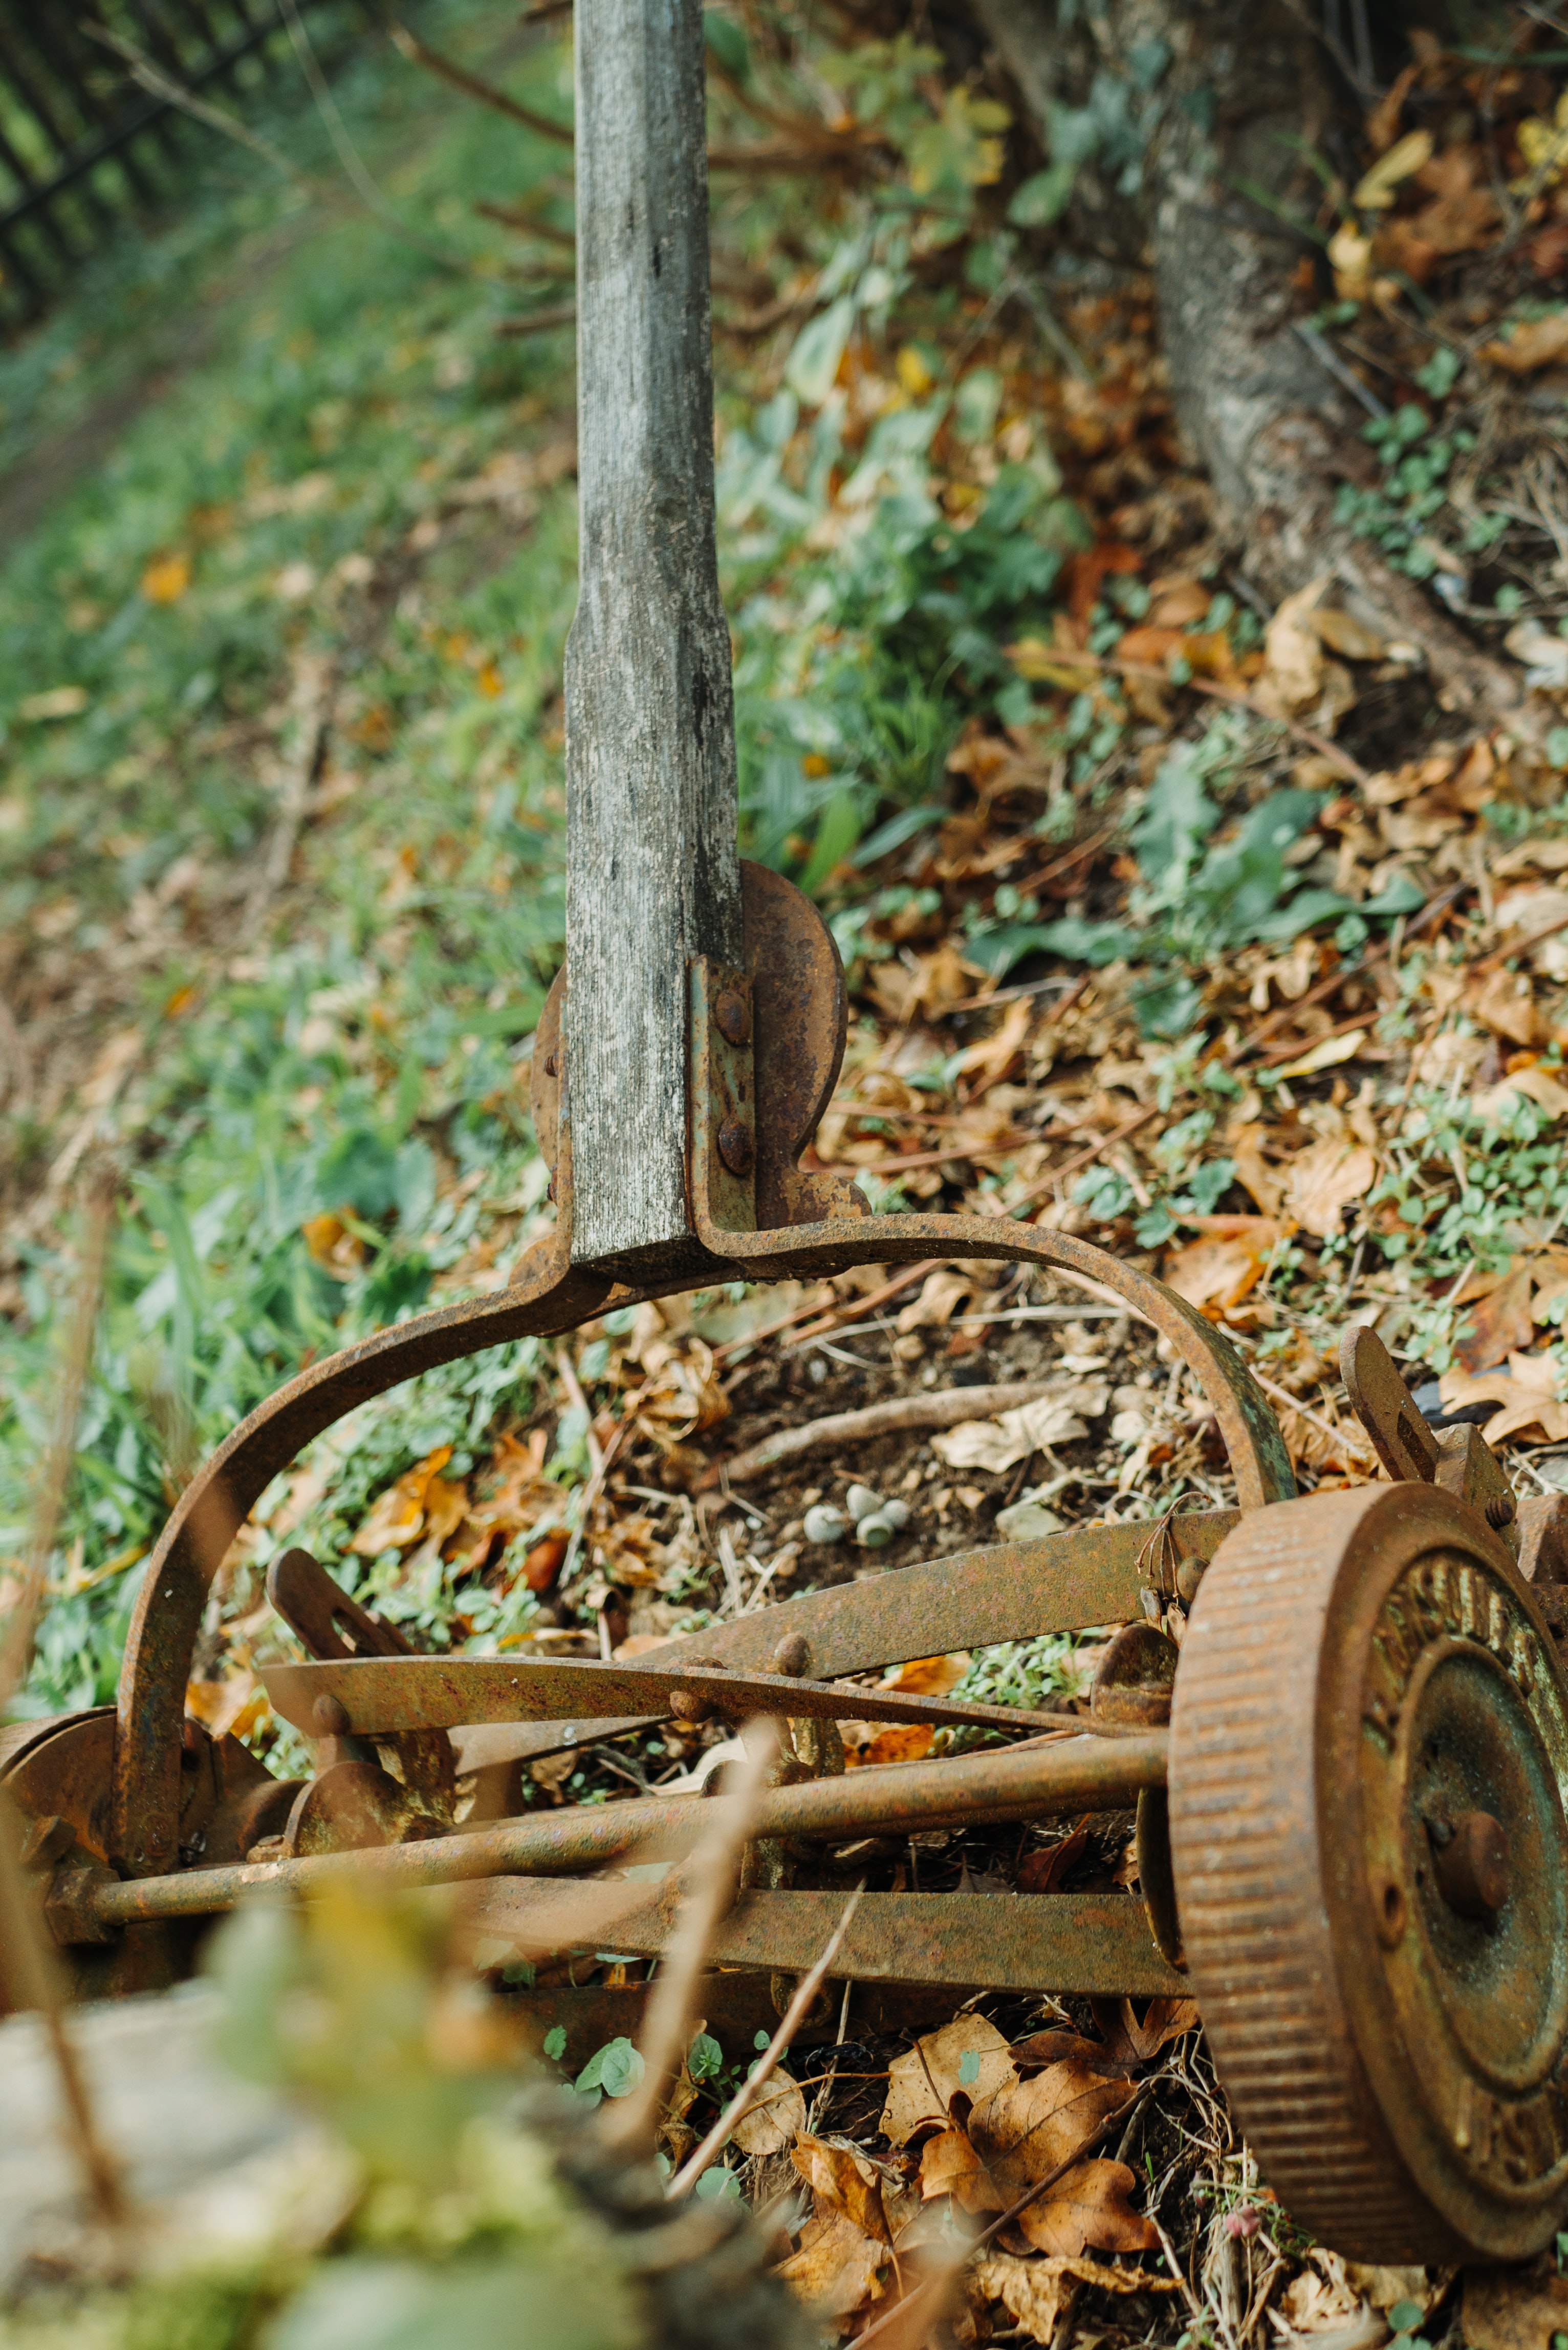 brown metal reel mower close-up photography